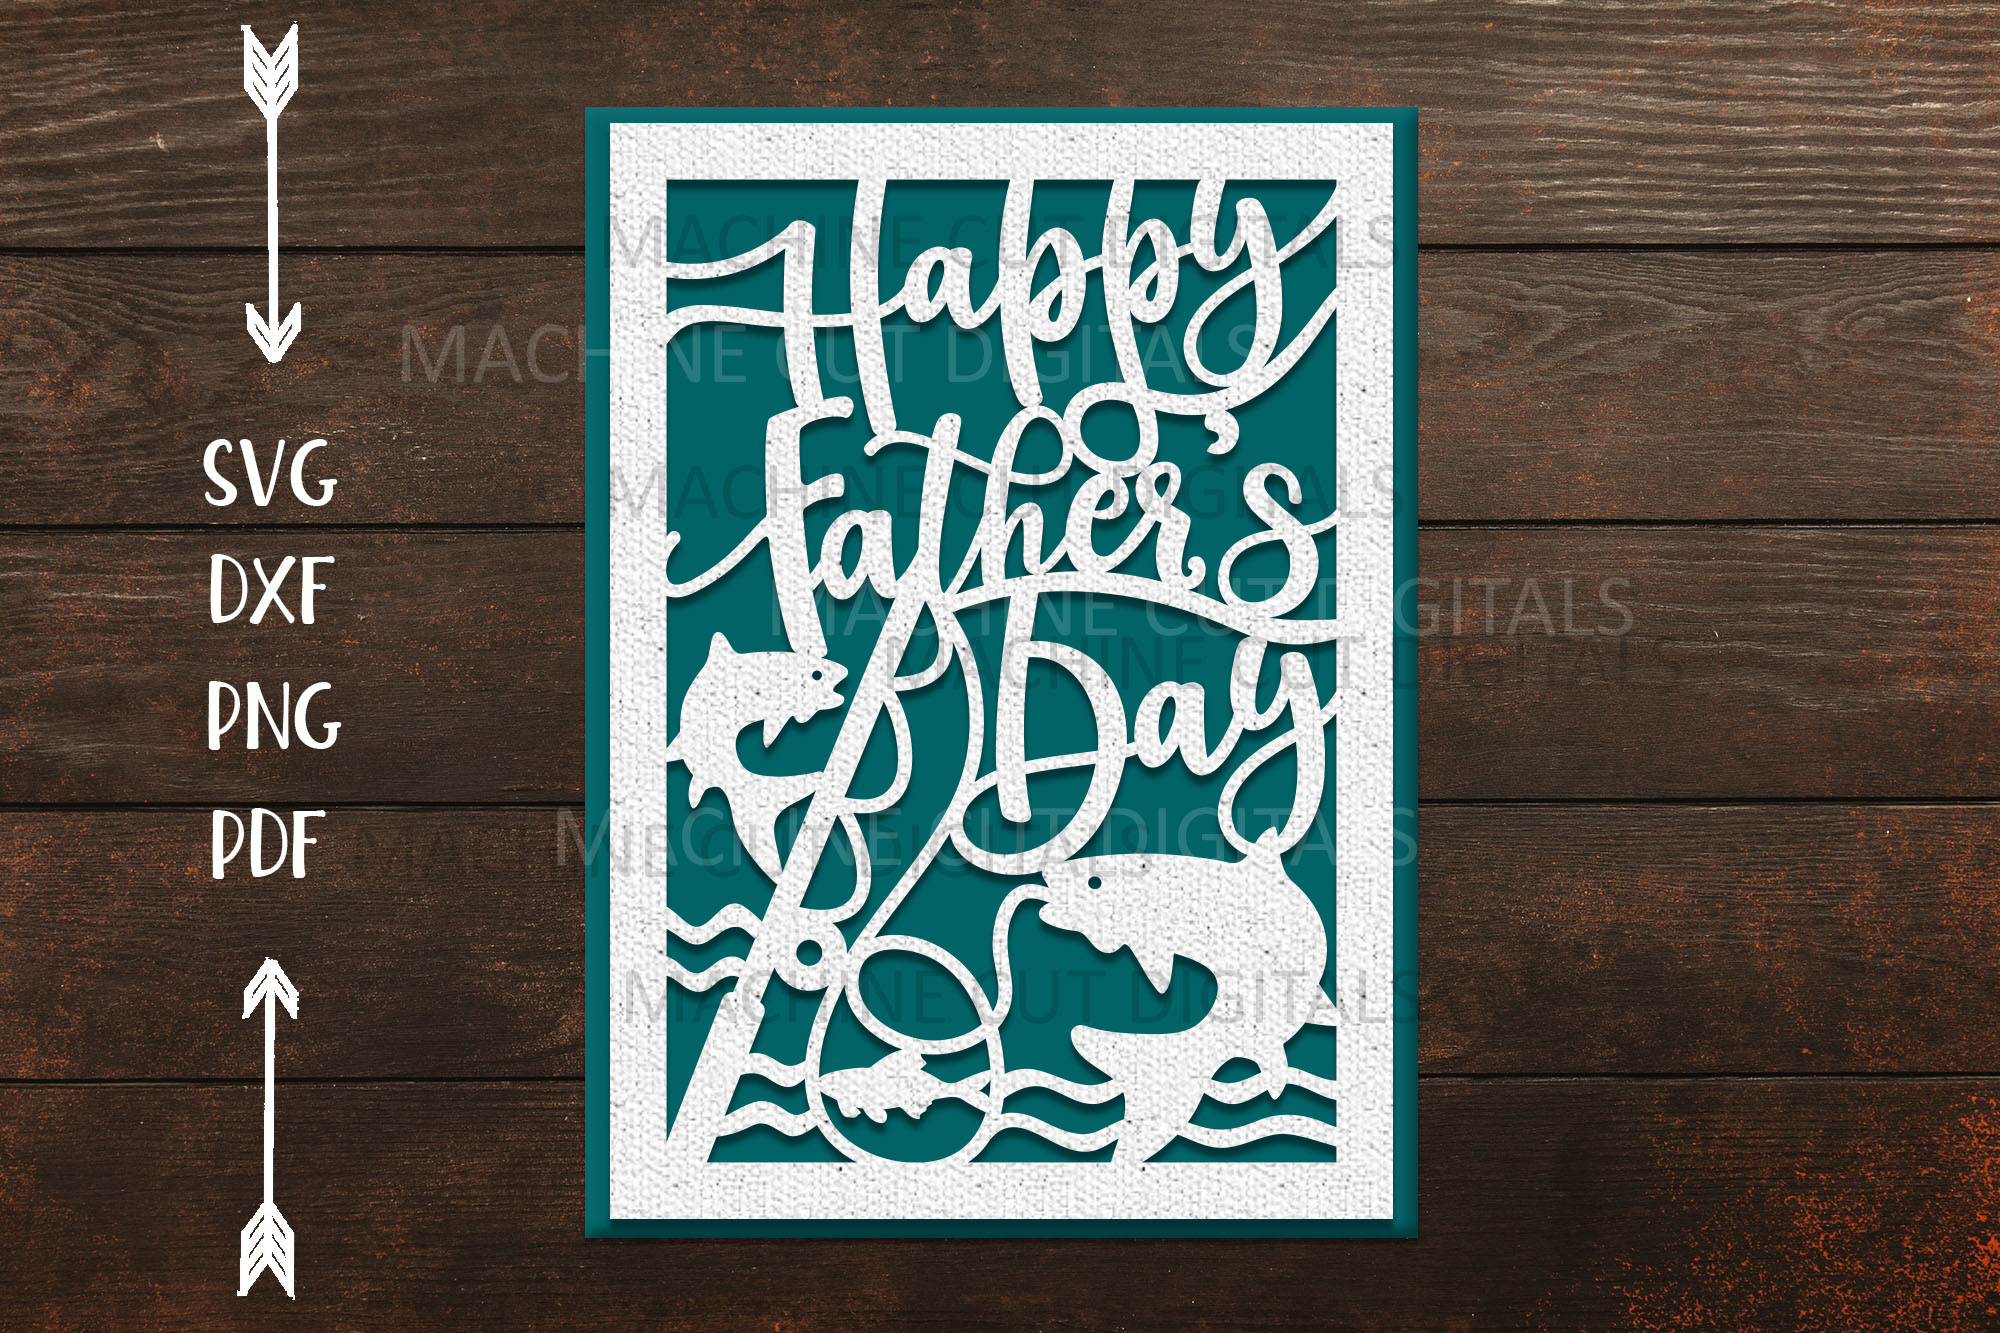 Happy Father's Day Cut out Card SVG File